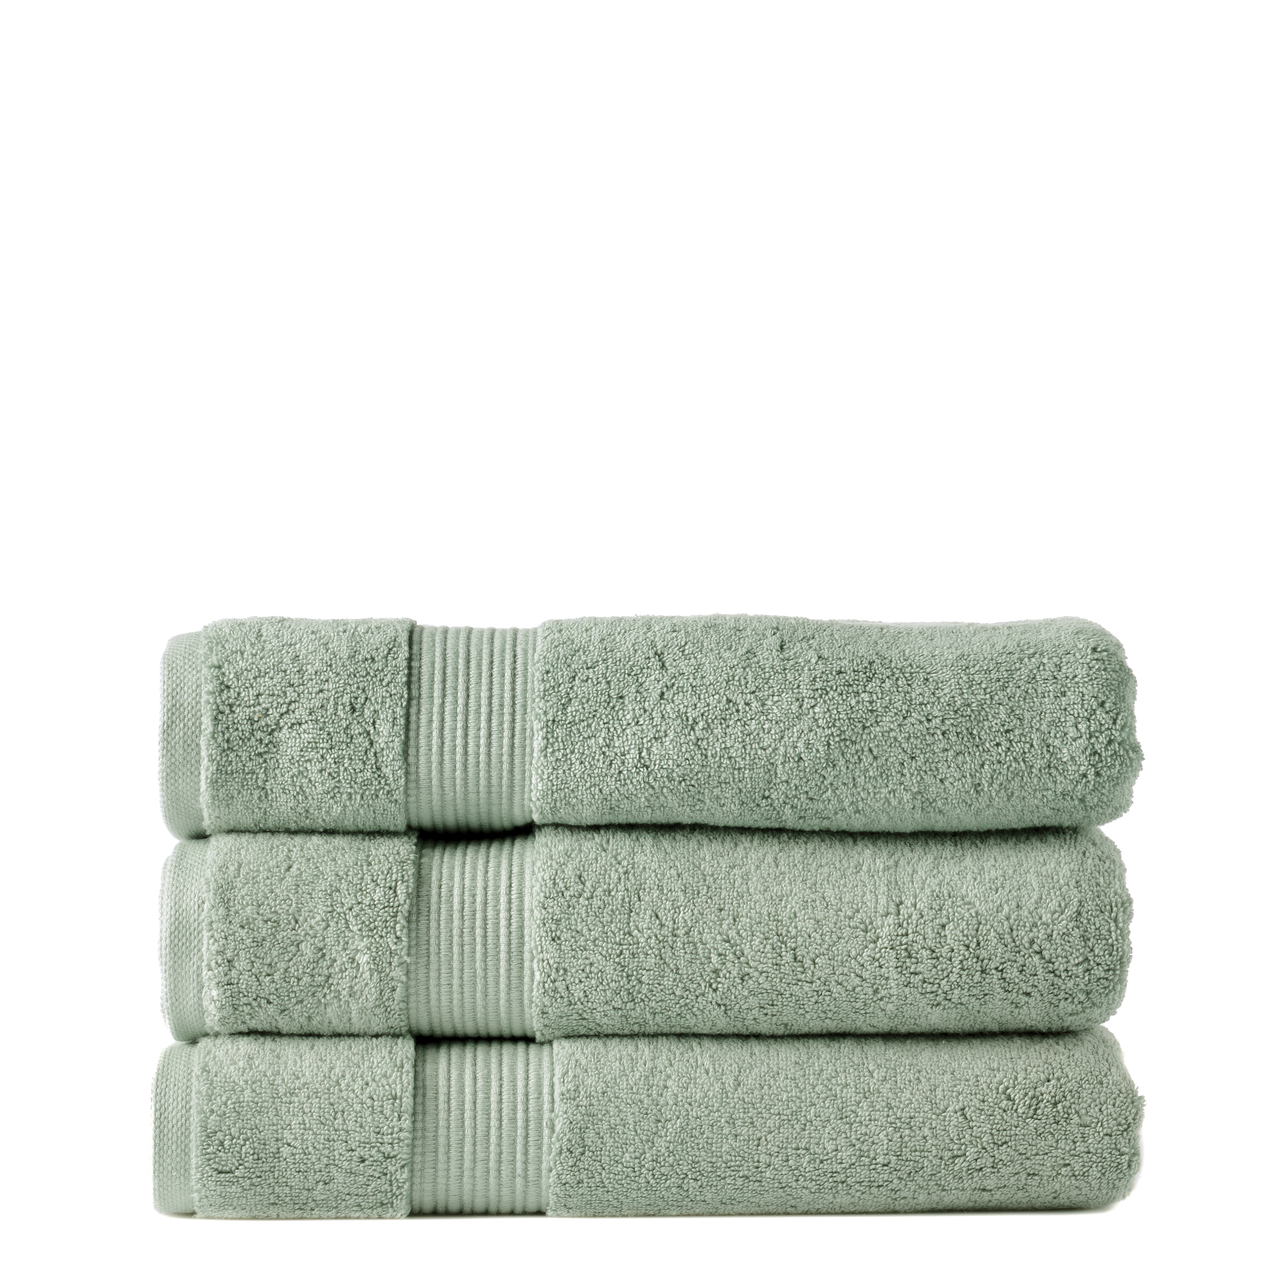 Our Zero Twist 650 gsm 100% cotton bath towels are soft and plush. They are colourfast and durable. The drying becomes more enhanced with every wash maintaing a soft and plush texture.  Colour Eucalypt There are 10 beautiful colours to choose from all with matching accessories.